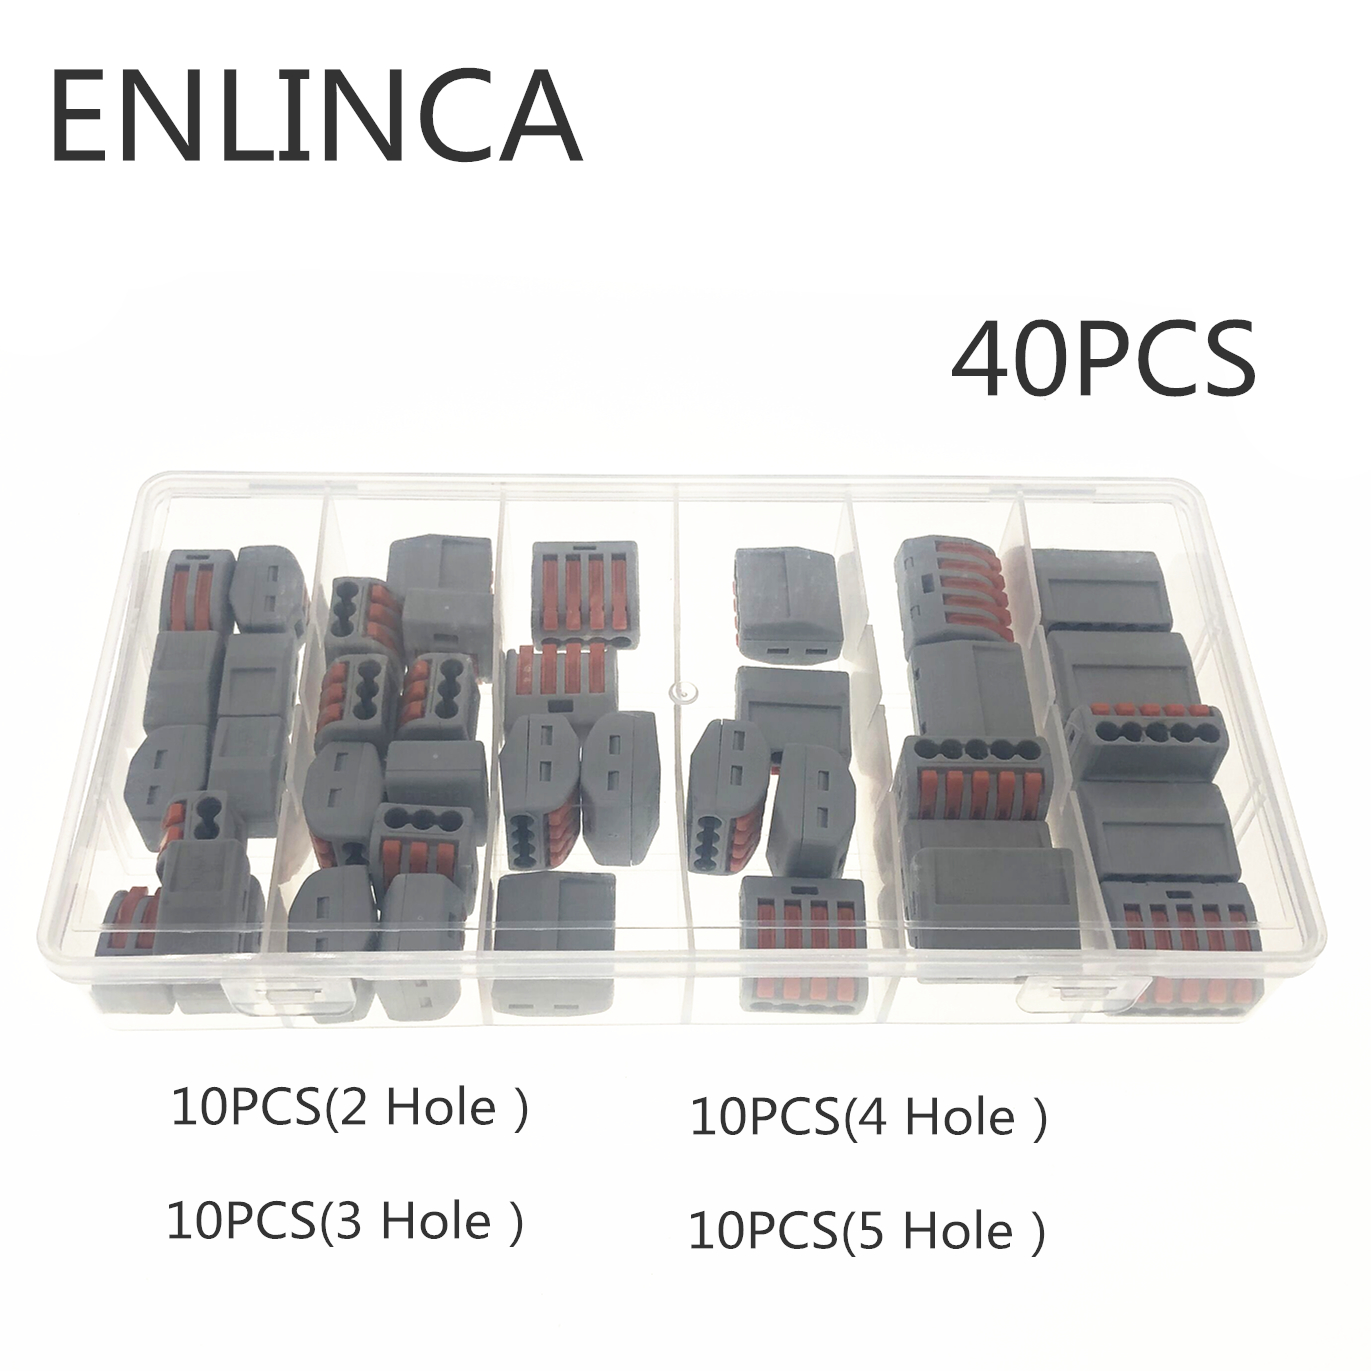 60pcs/set Terminal Block Spring Lever Nut Terminal Blocks Reusable Electric Cable Connector Wire Home Tools Of Insulating